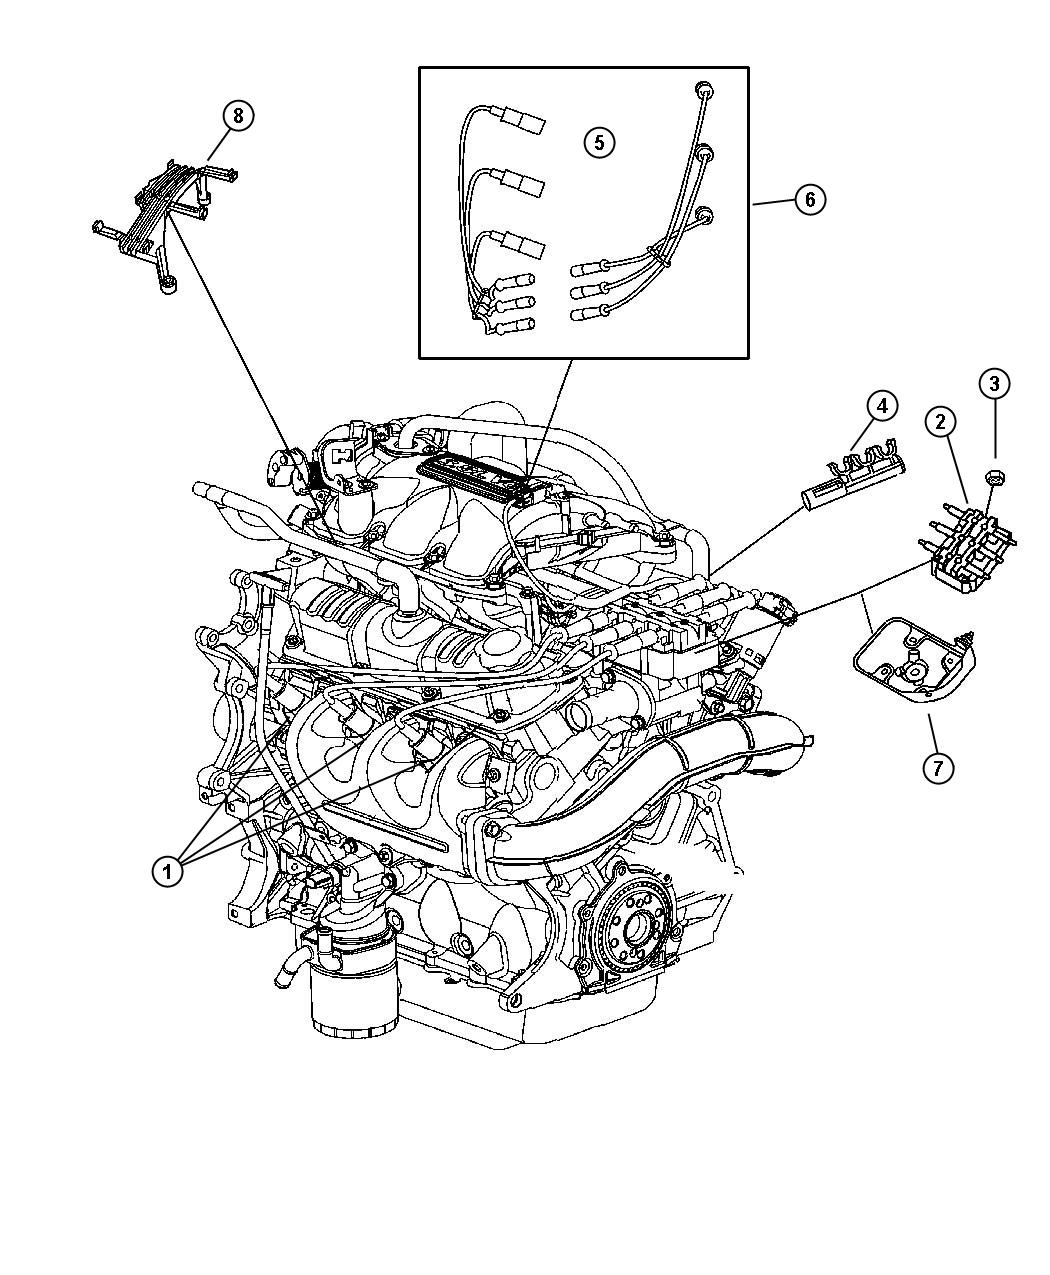 chrysler pacifica steering parts diagram  chrysler  auto